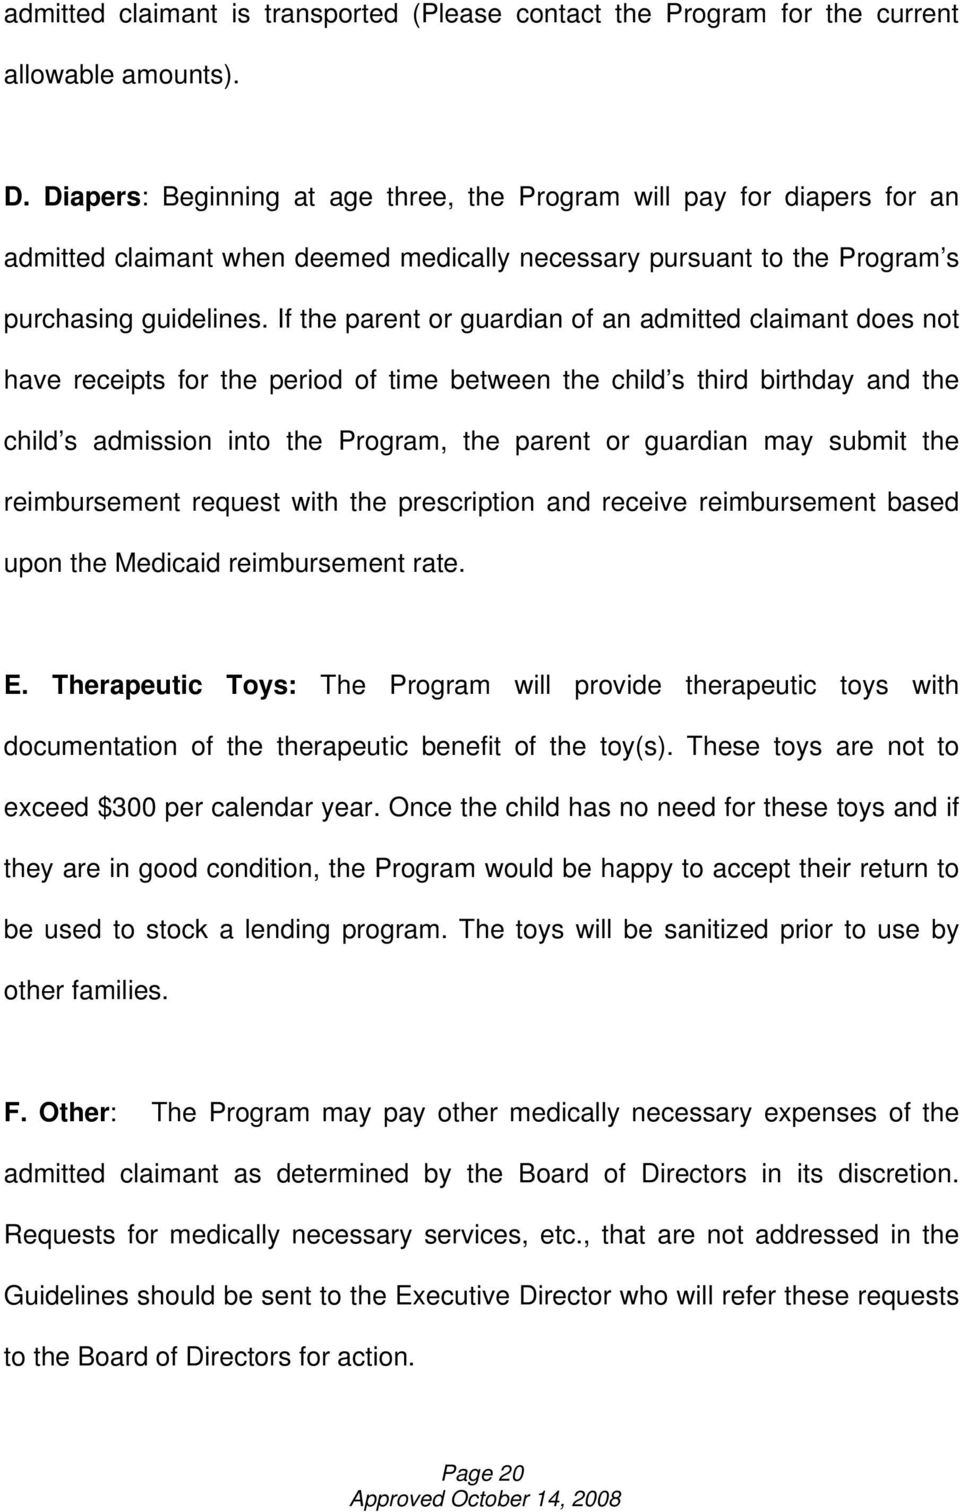 If the parent or guardian of an admitted claimant does not have receipts for the period of time between the child s third birthday and the child s admission into the Program, the parent or guardian